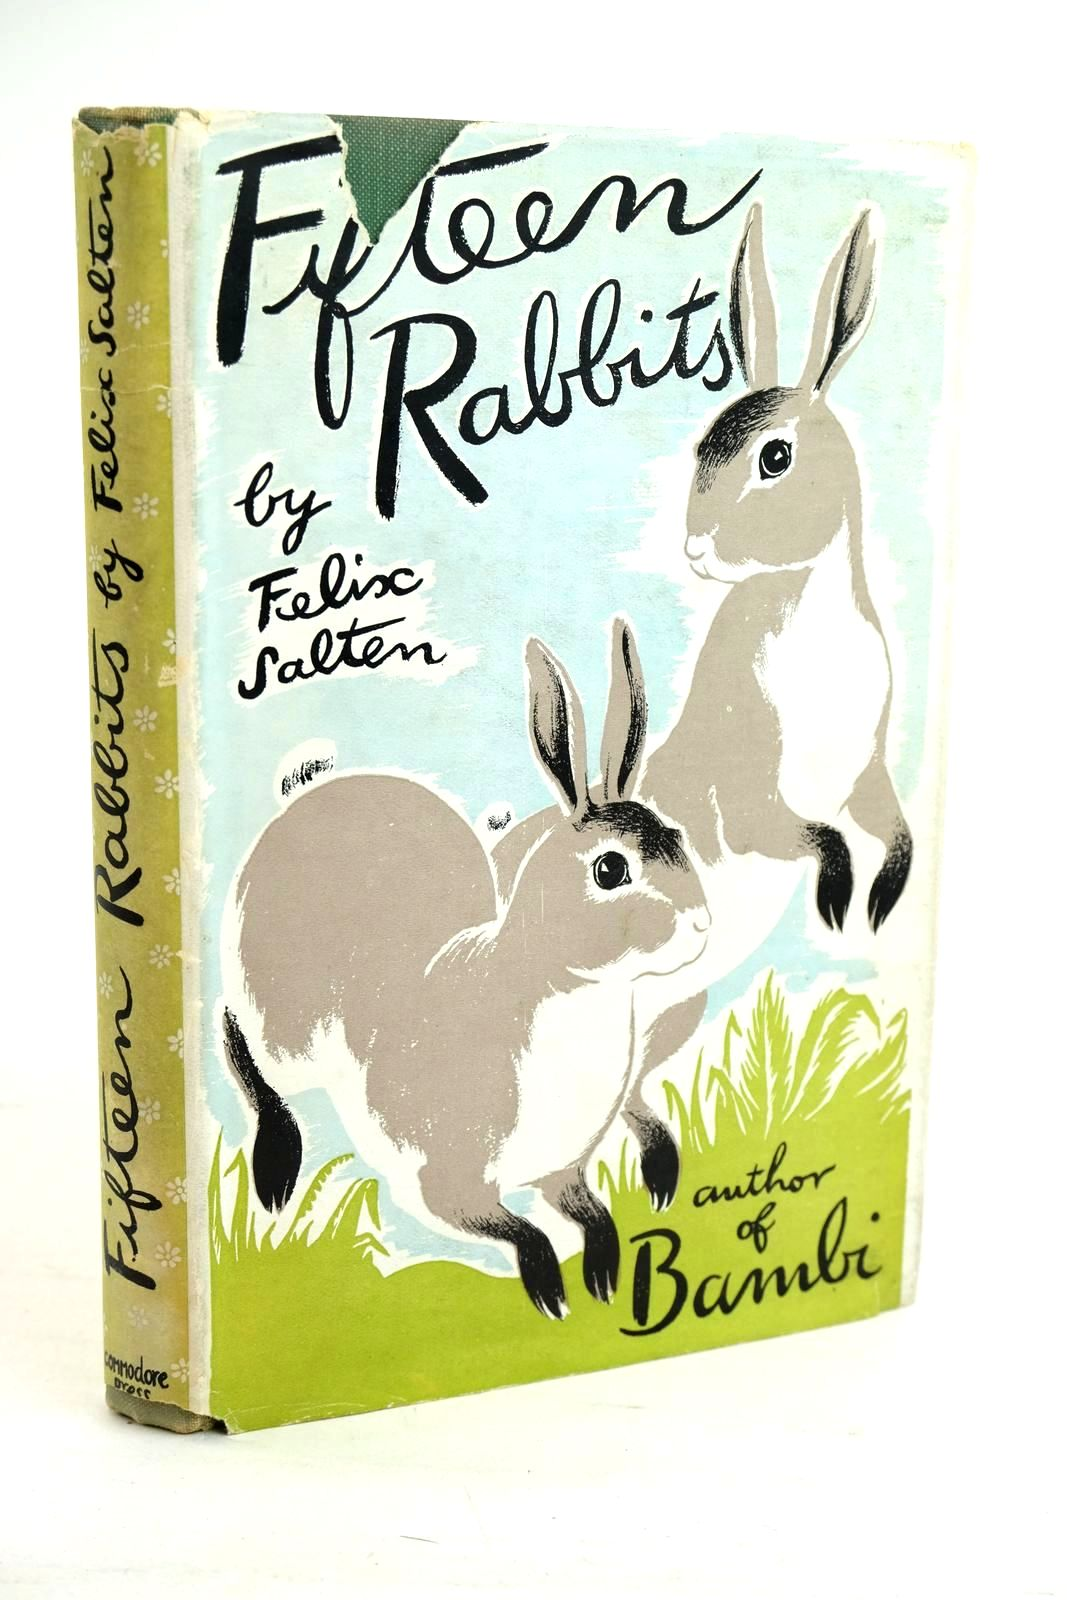 Photo of FIFTEEN RABBITS written by Salten, Felix Chambers, Whittaker illustrated by Dunn, Sheila published by The Commodore Press (STOCK CODE: 1320449)  for sale by Stella & Rose's Books